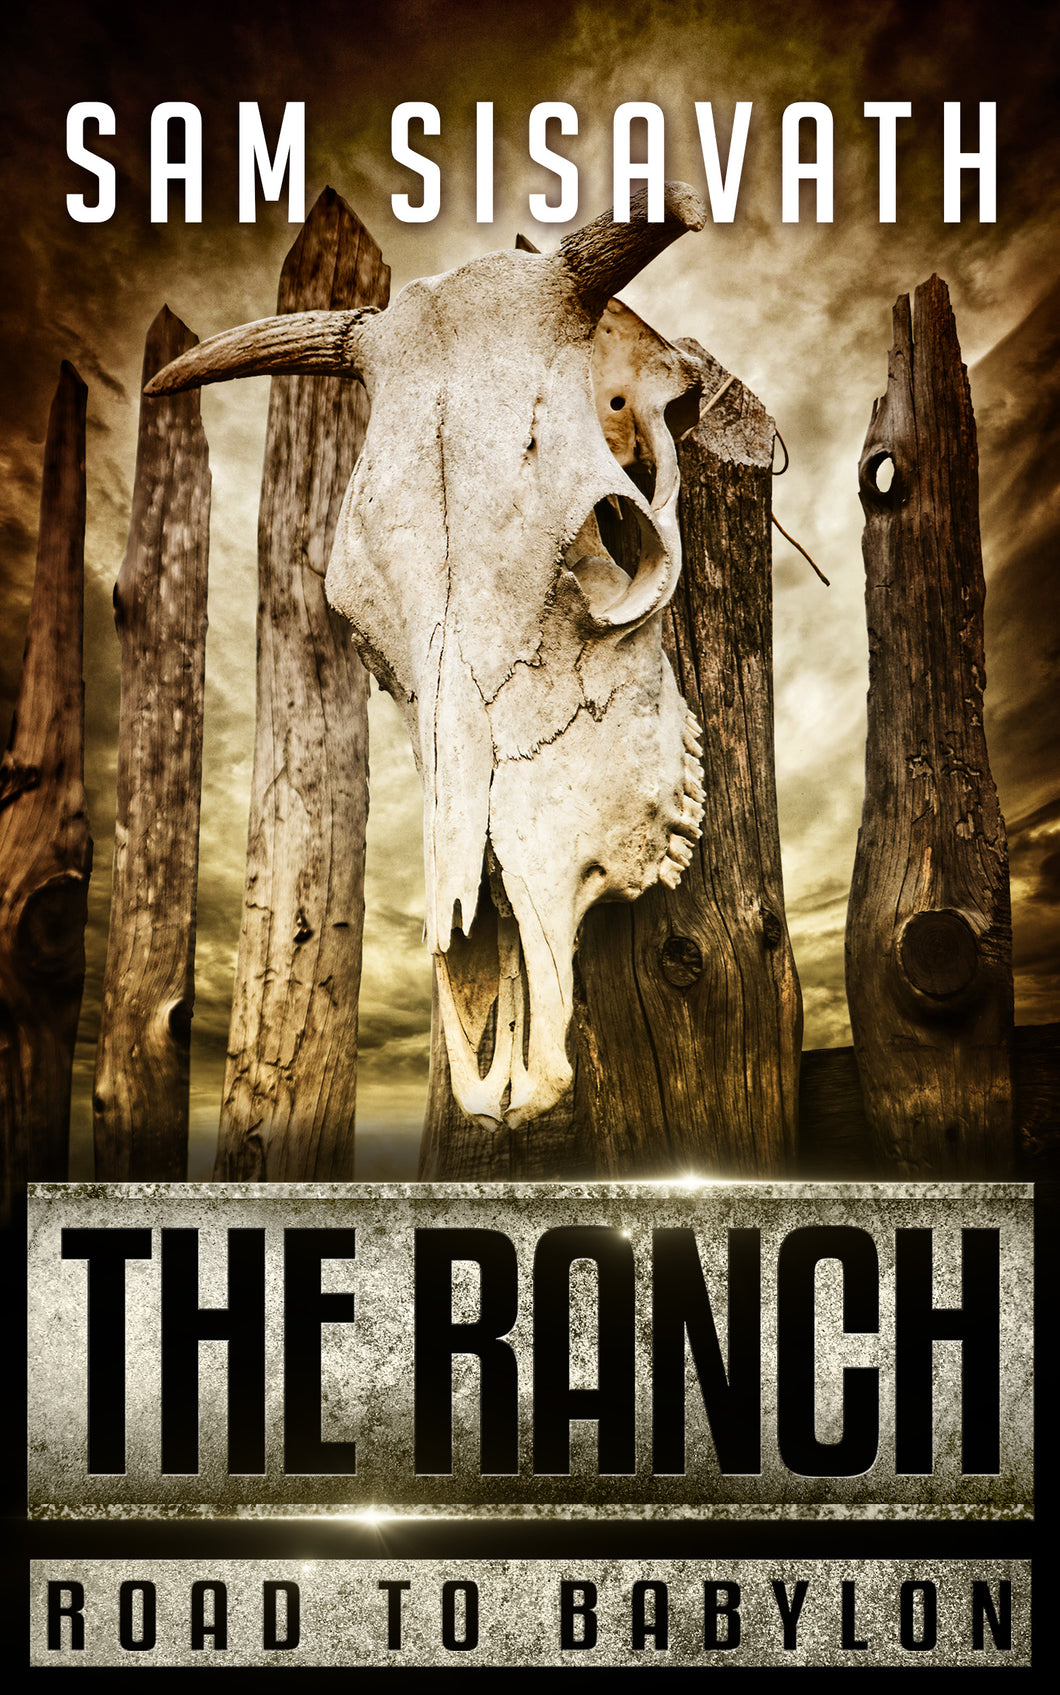 The Ranch (Road to Babylon #9)